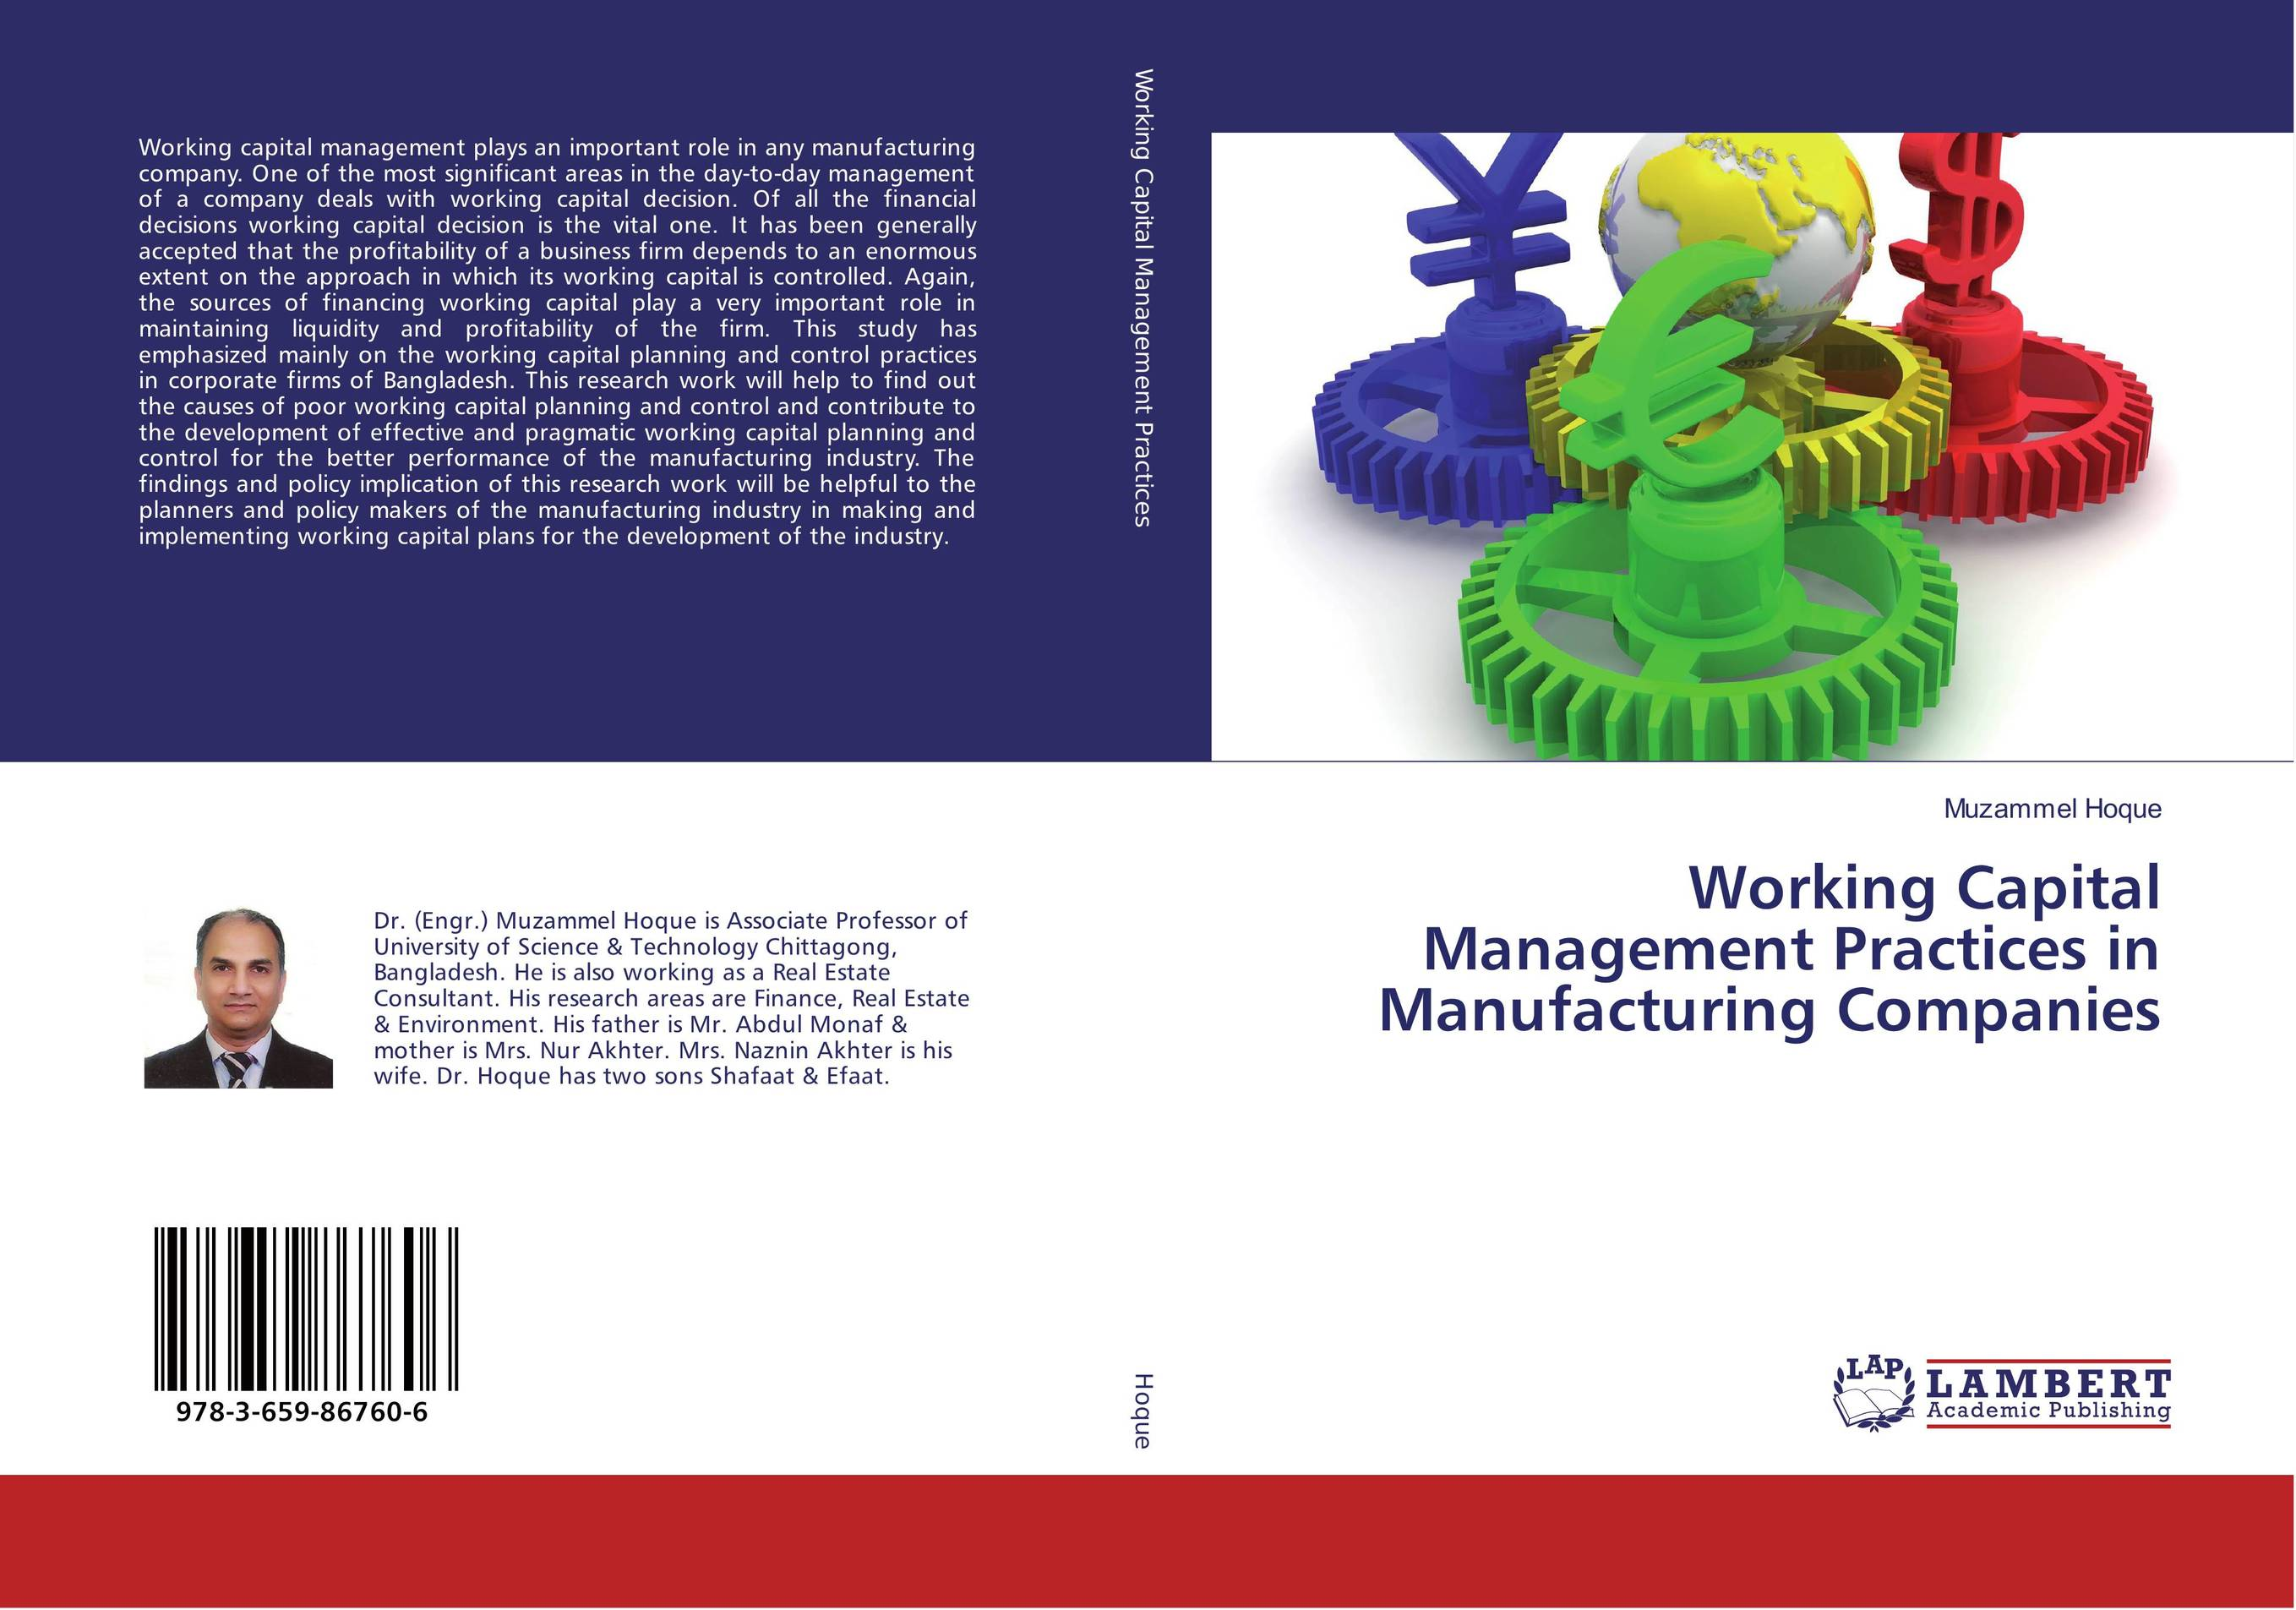 Working Capital Management Practices in Manufacturing Companies determinants of capital account deregulation